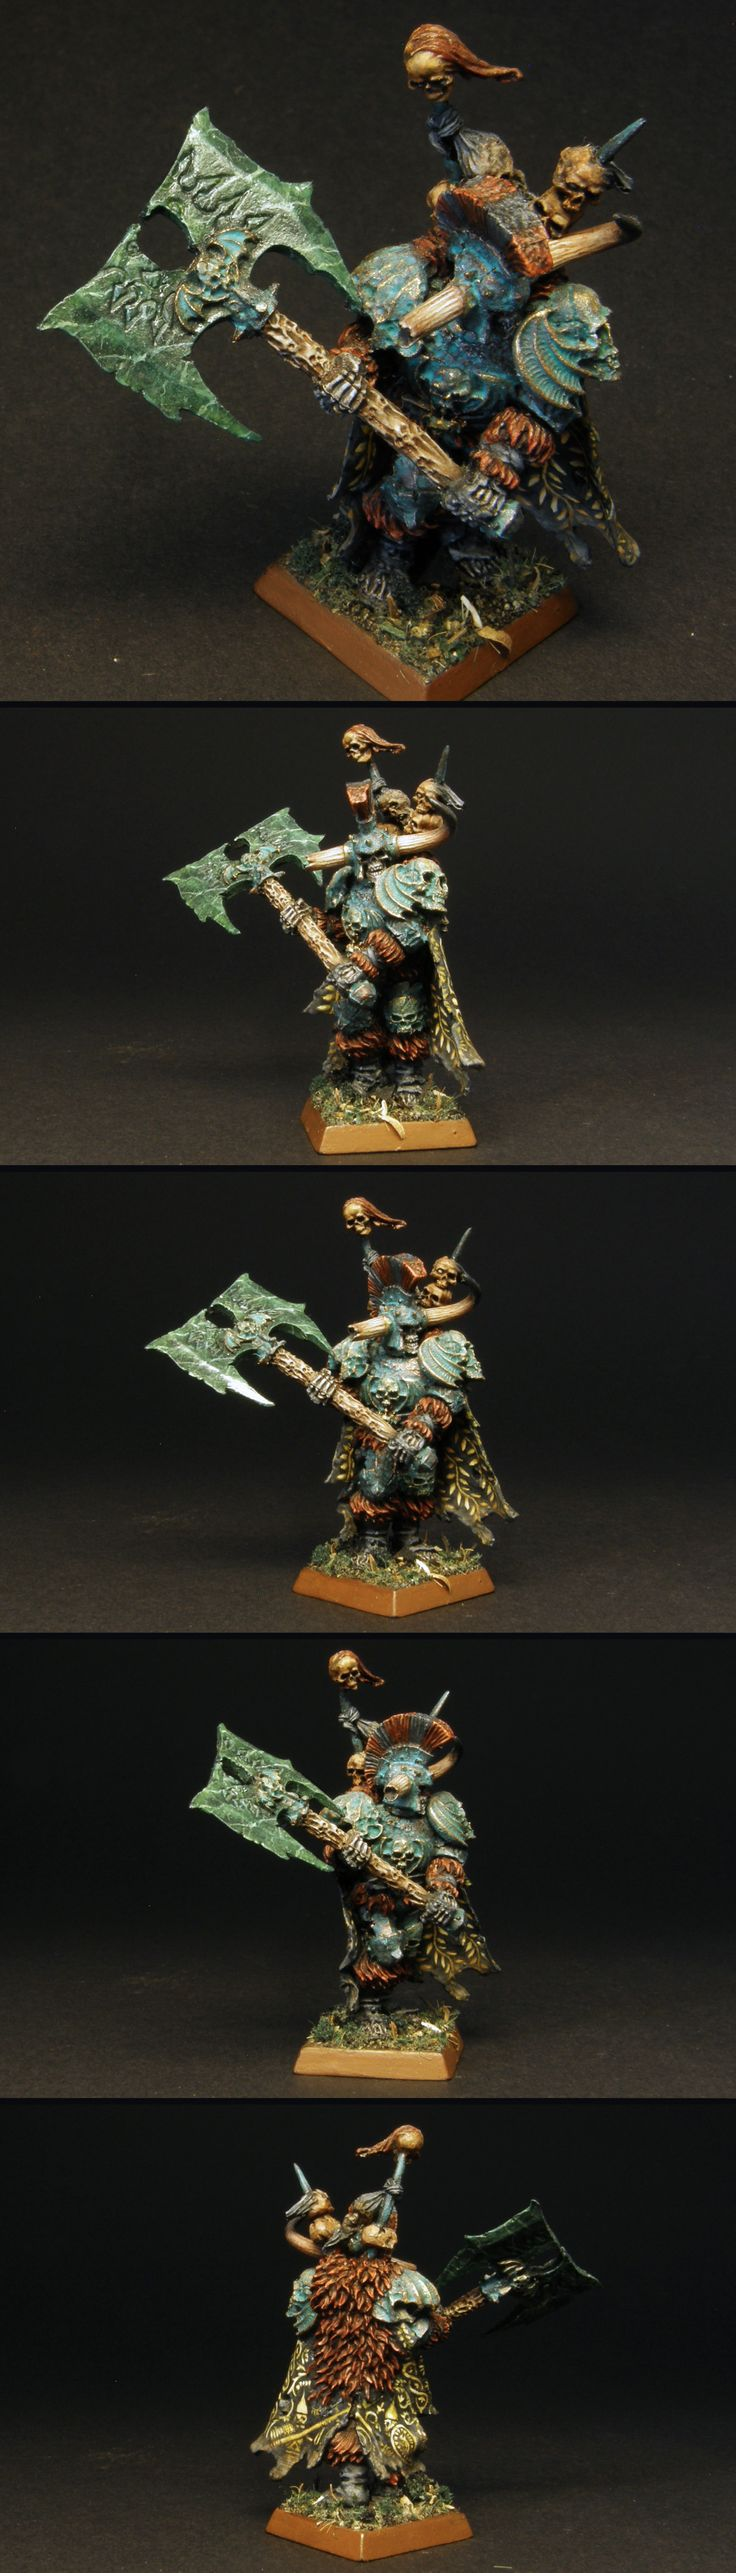 Krell the Lord of Undeath miniature painted for Vampire Counts, Warhammer Fantasy Battle, or Age of Sigmar if need be. Right now GW calls him Wight King with Black Axe. He belongs to the Deathrattle faction in Death Grand Alliance.